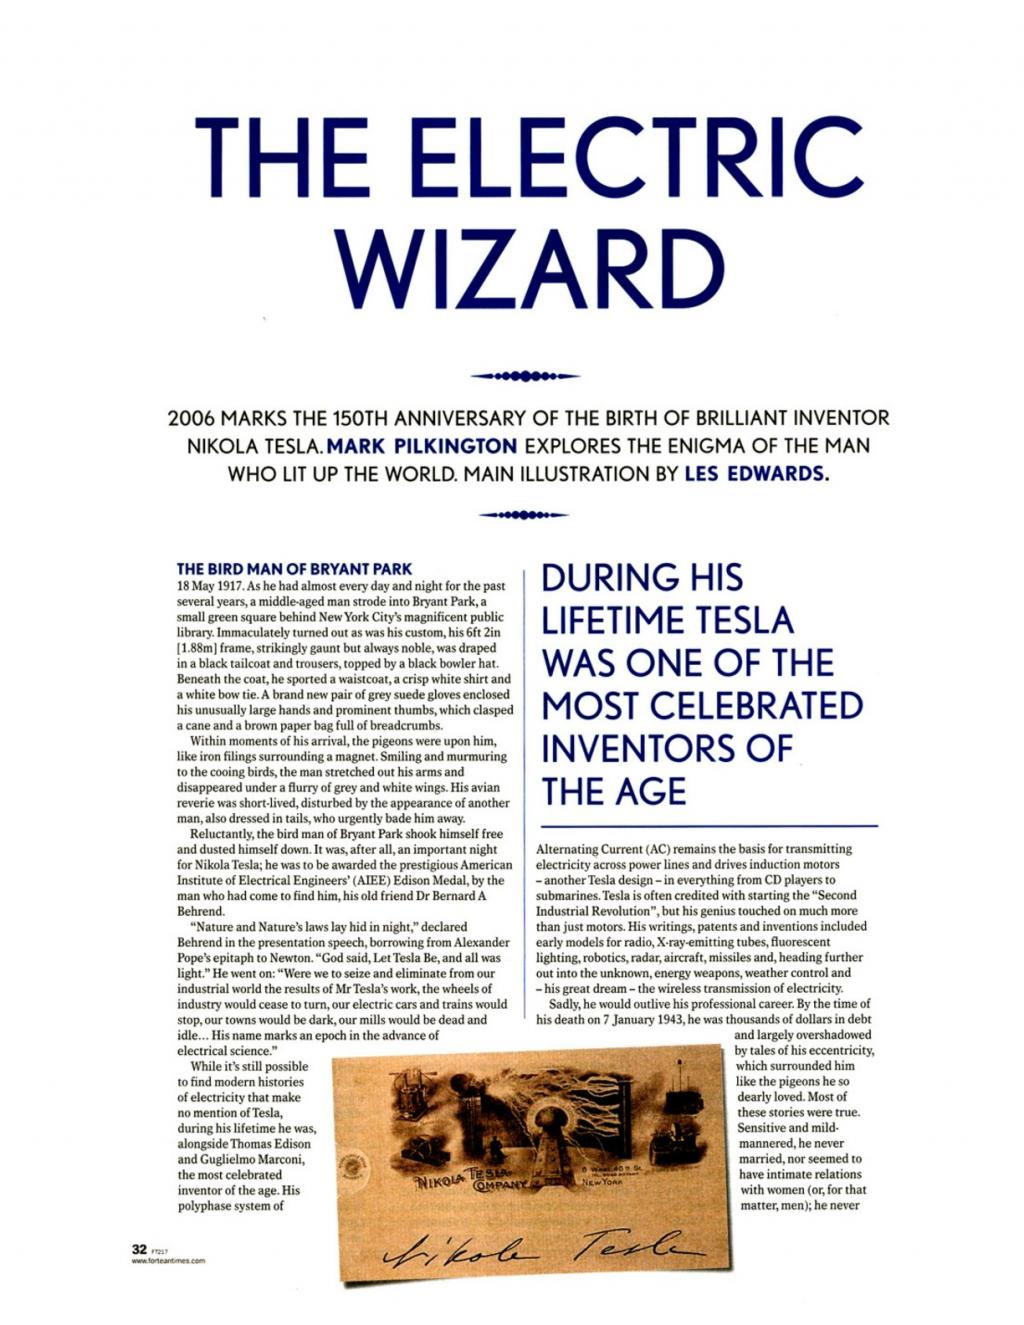 Preview of The Electric Wizard article